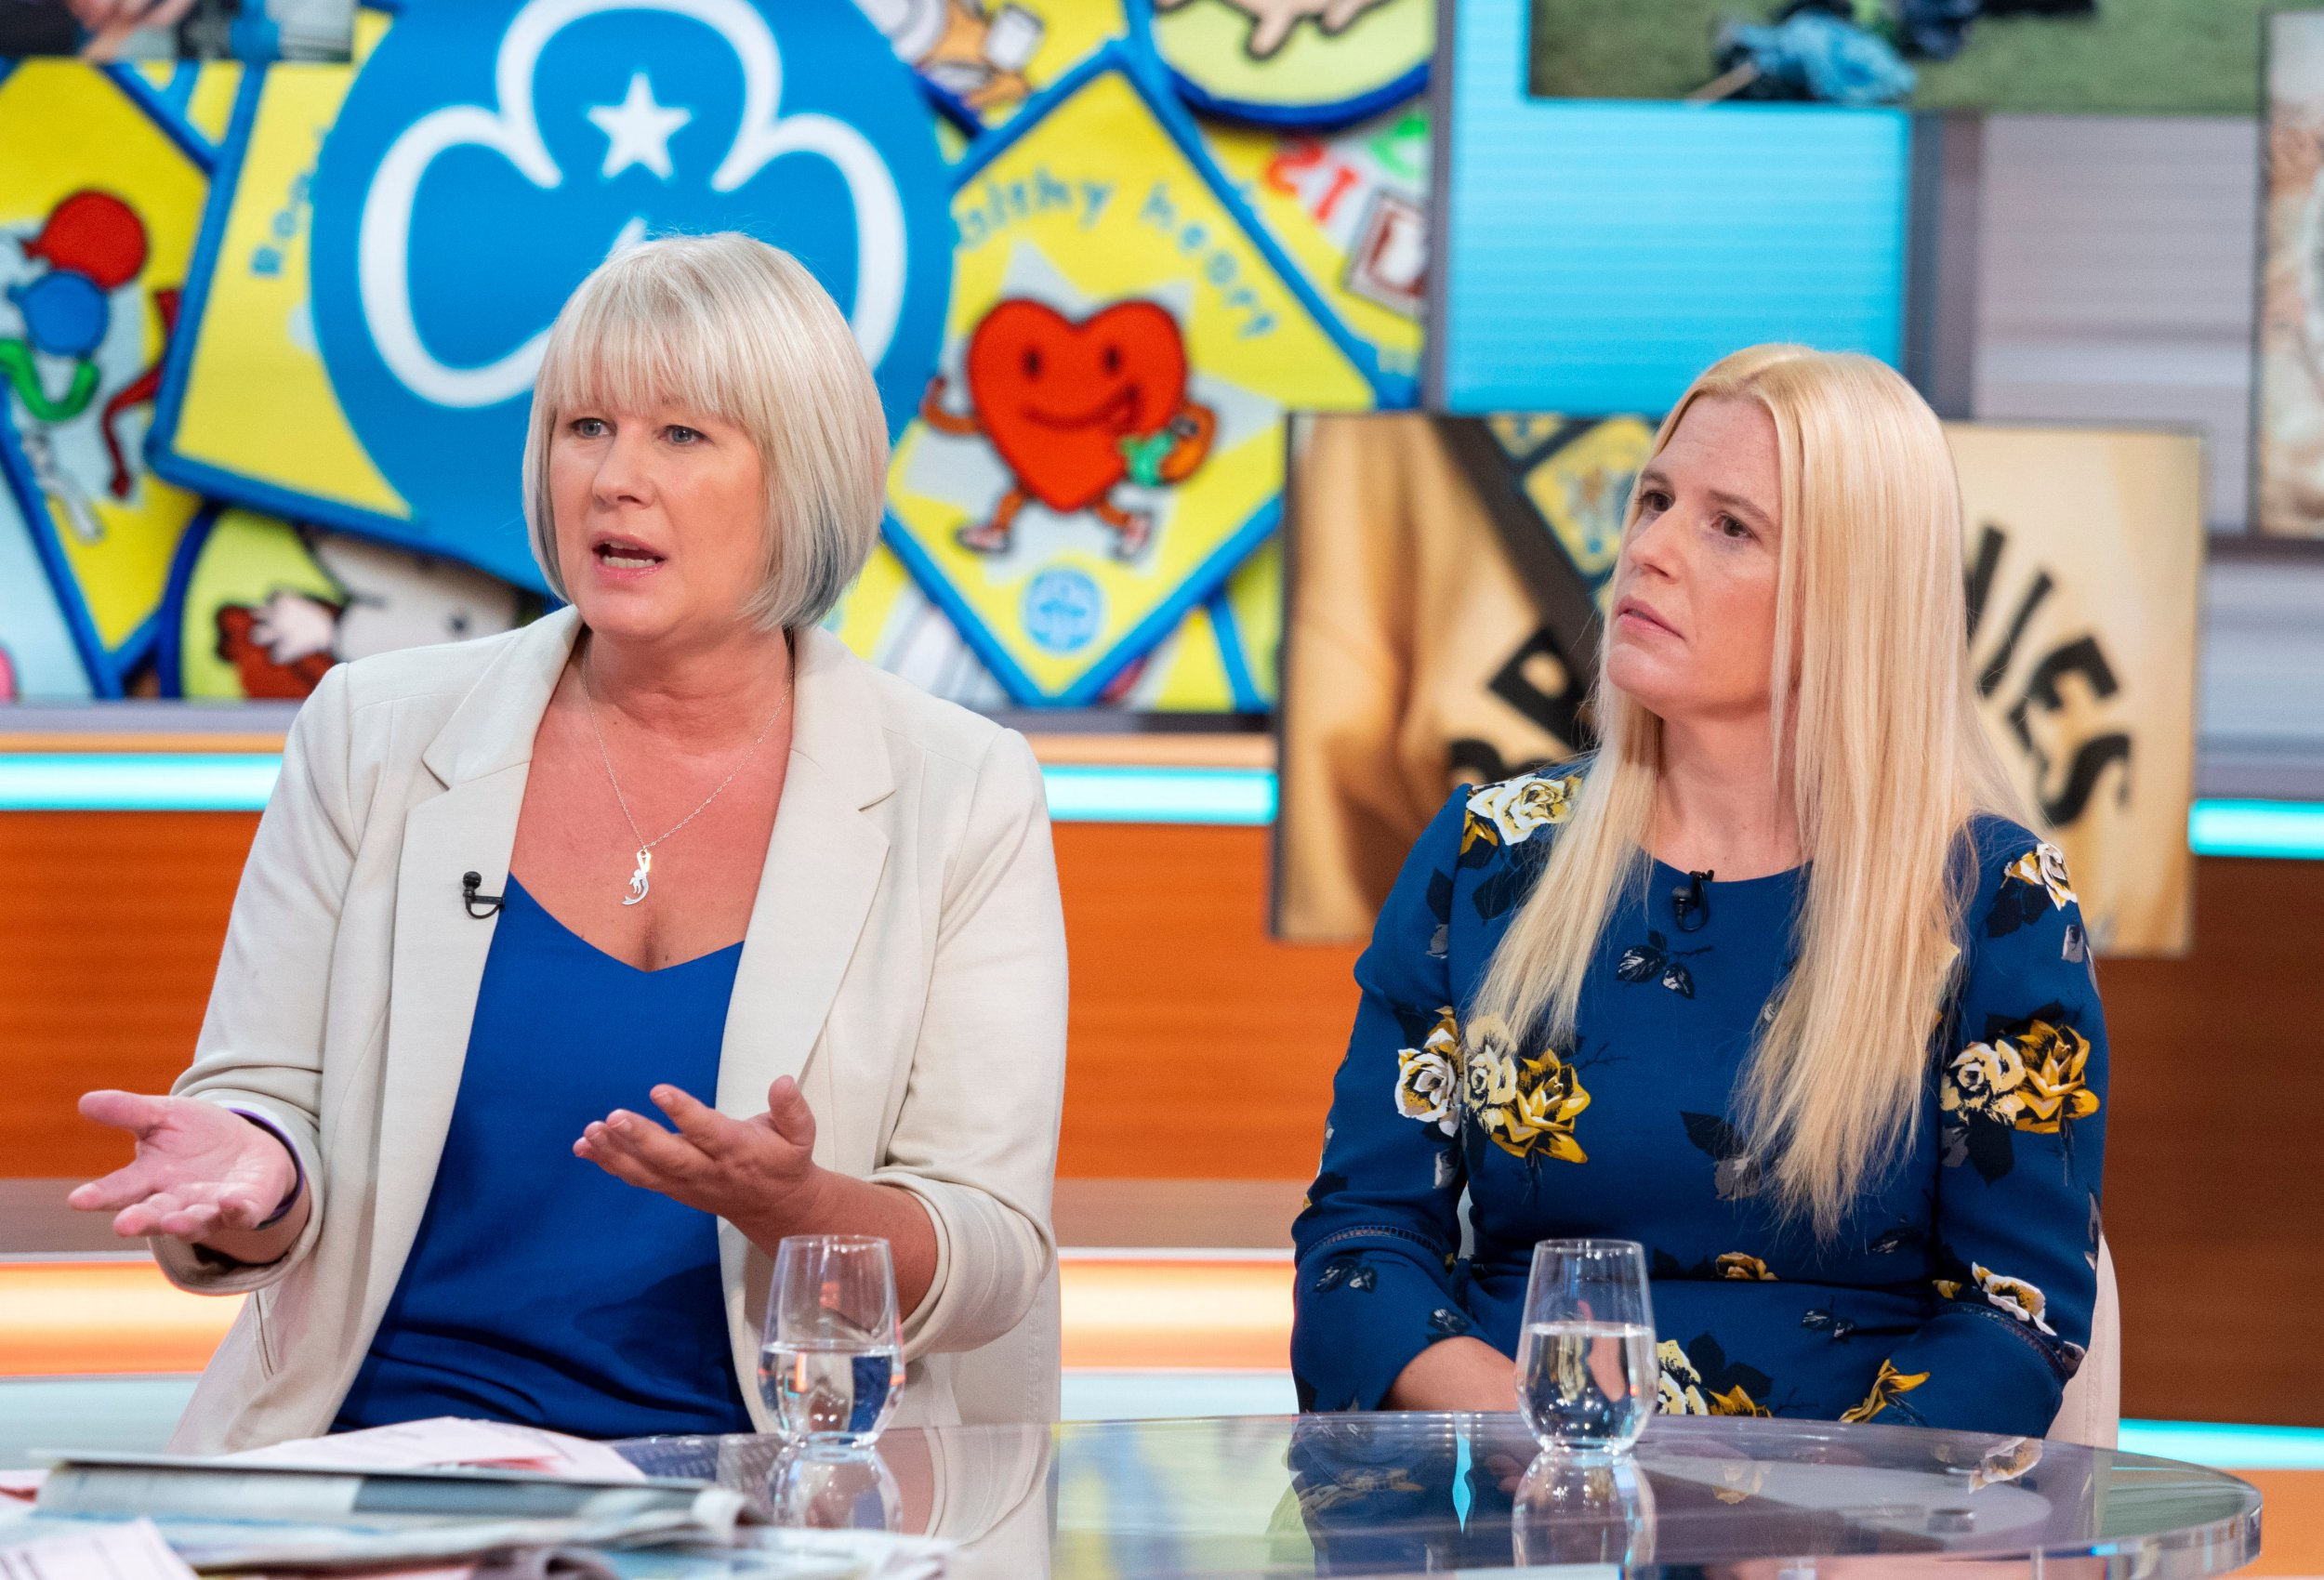 Editorial use only Mandatory Credit: Photo by Ken McKay/ITV/REX/Shutterstock (9894140j) Susie Green and Caroline Farrow 'Good Morning Britain' TV show, London, UK - 25 Sep 2018 GIRL GUIDE TRANSGENDER ROW Two guide leaders who opposed a new policy on transgender girls have been expelled and their local groups closed down. The policy brought in last year has been controversial and says that leaders are not allowed to tell girls or their parents if a girl or leader in their unit used to identify as male - the expelled leaders think this concern with transgender rights conflicts with parents rights. GFX: Guide Leaders' facebook post DESK: Susie Green (Trans activist. The guide leaders are transphobic. Mum of trans girl.) DESK: Caroline Farrow (Catholic mum of 4 girls. Is refusing to let her kids join the guides because of this policy).